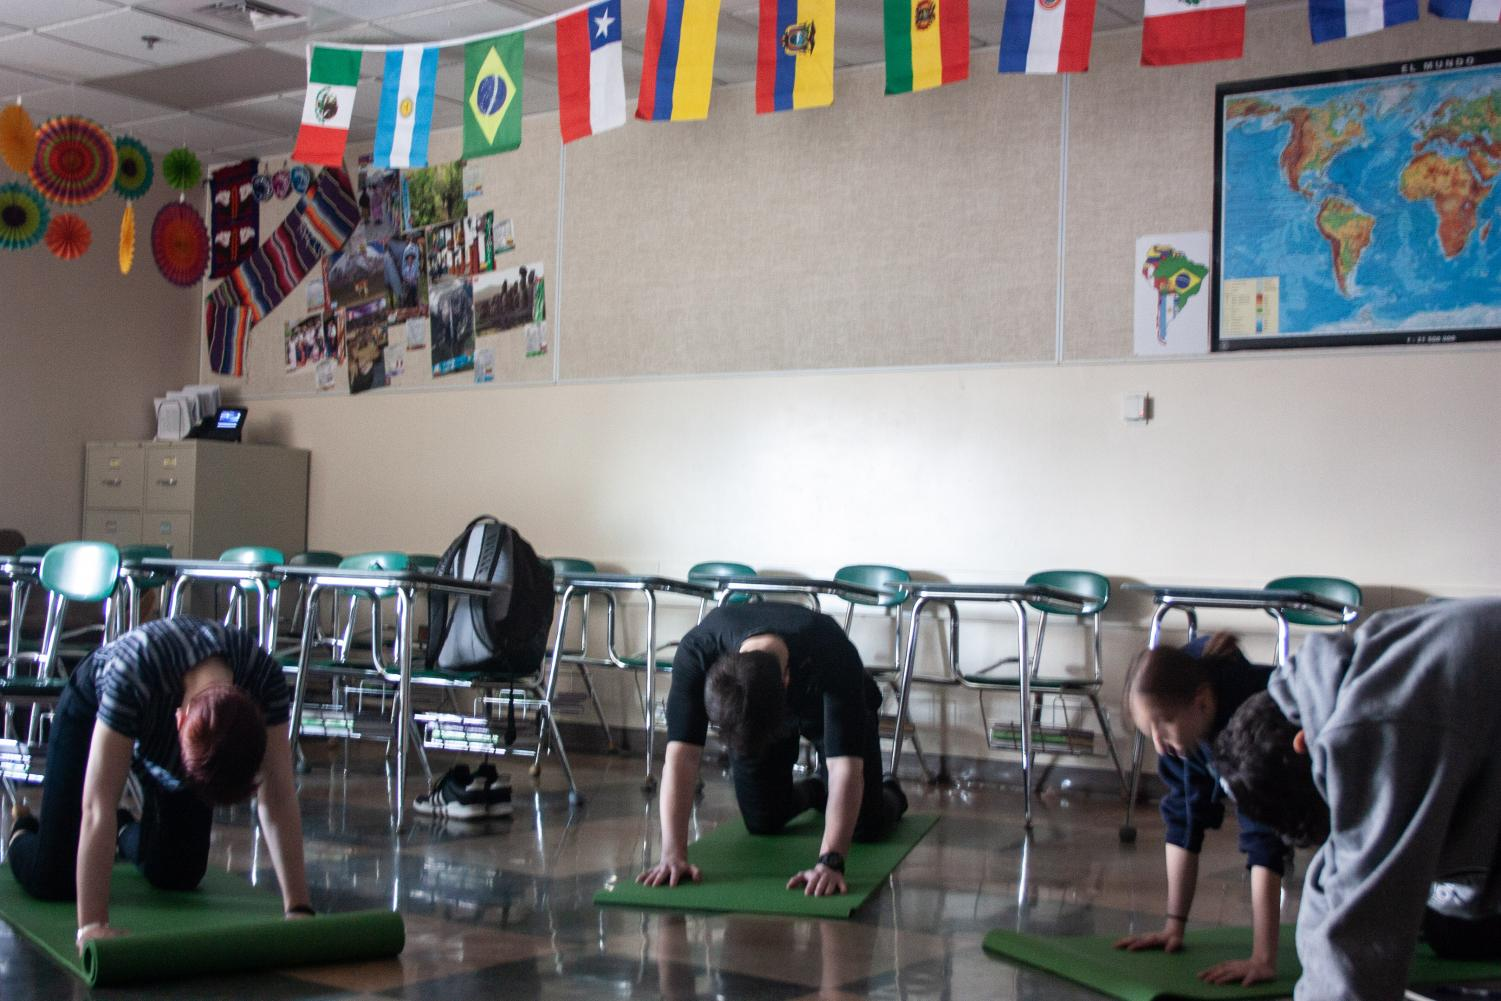 Students can participate in a mindfulness class. They do yoga and meditation.